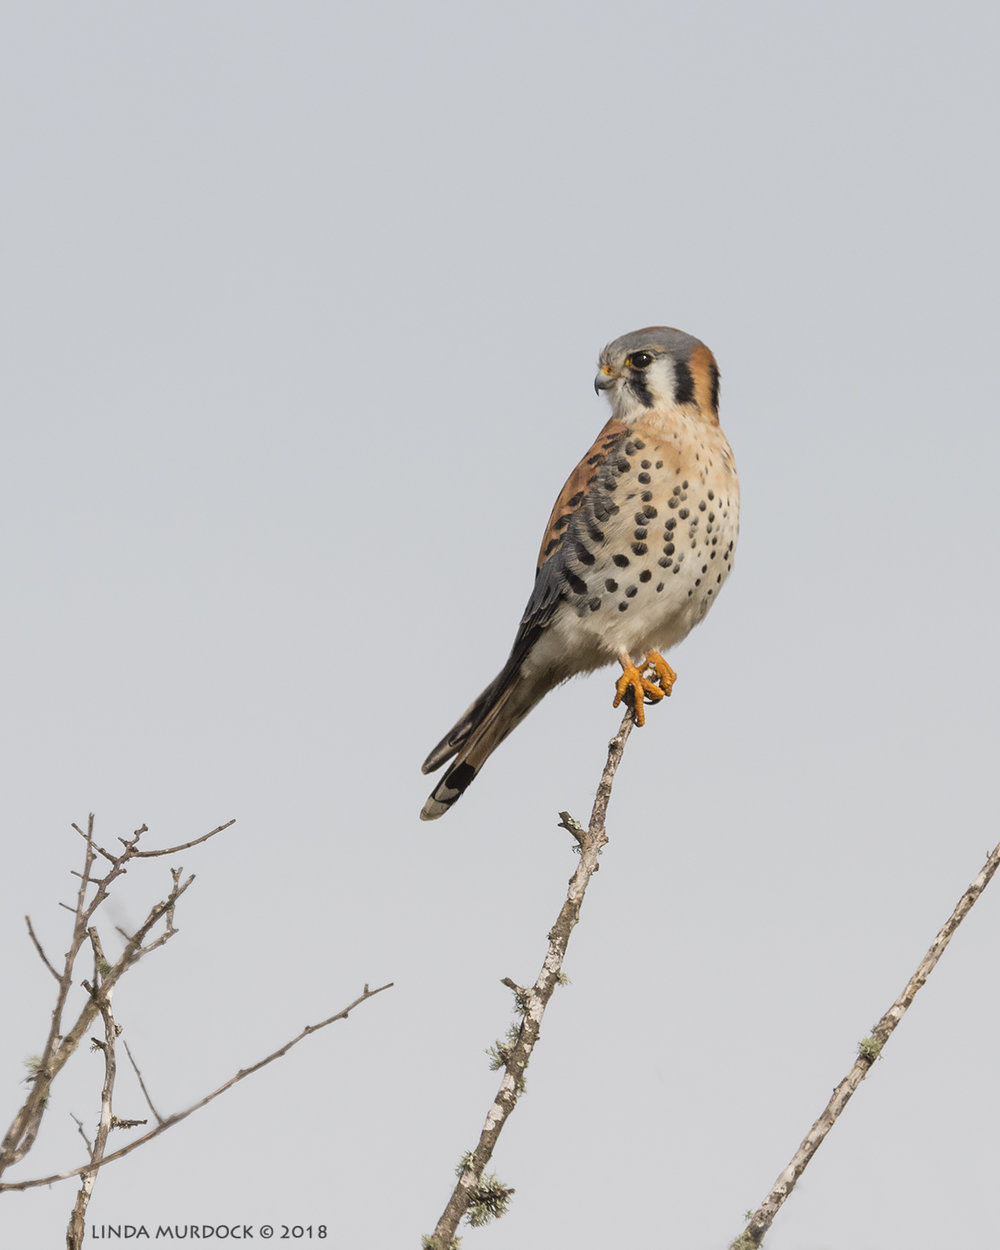 Killer Kestrel at the tip-top of a tree  Nikon D810 with NIKKOR 500mm f/4E VR + Nikon 1.4x TC ~ 1/2500   sec f/8.0 ISO 640; braced on truck